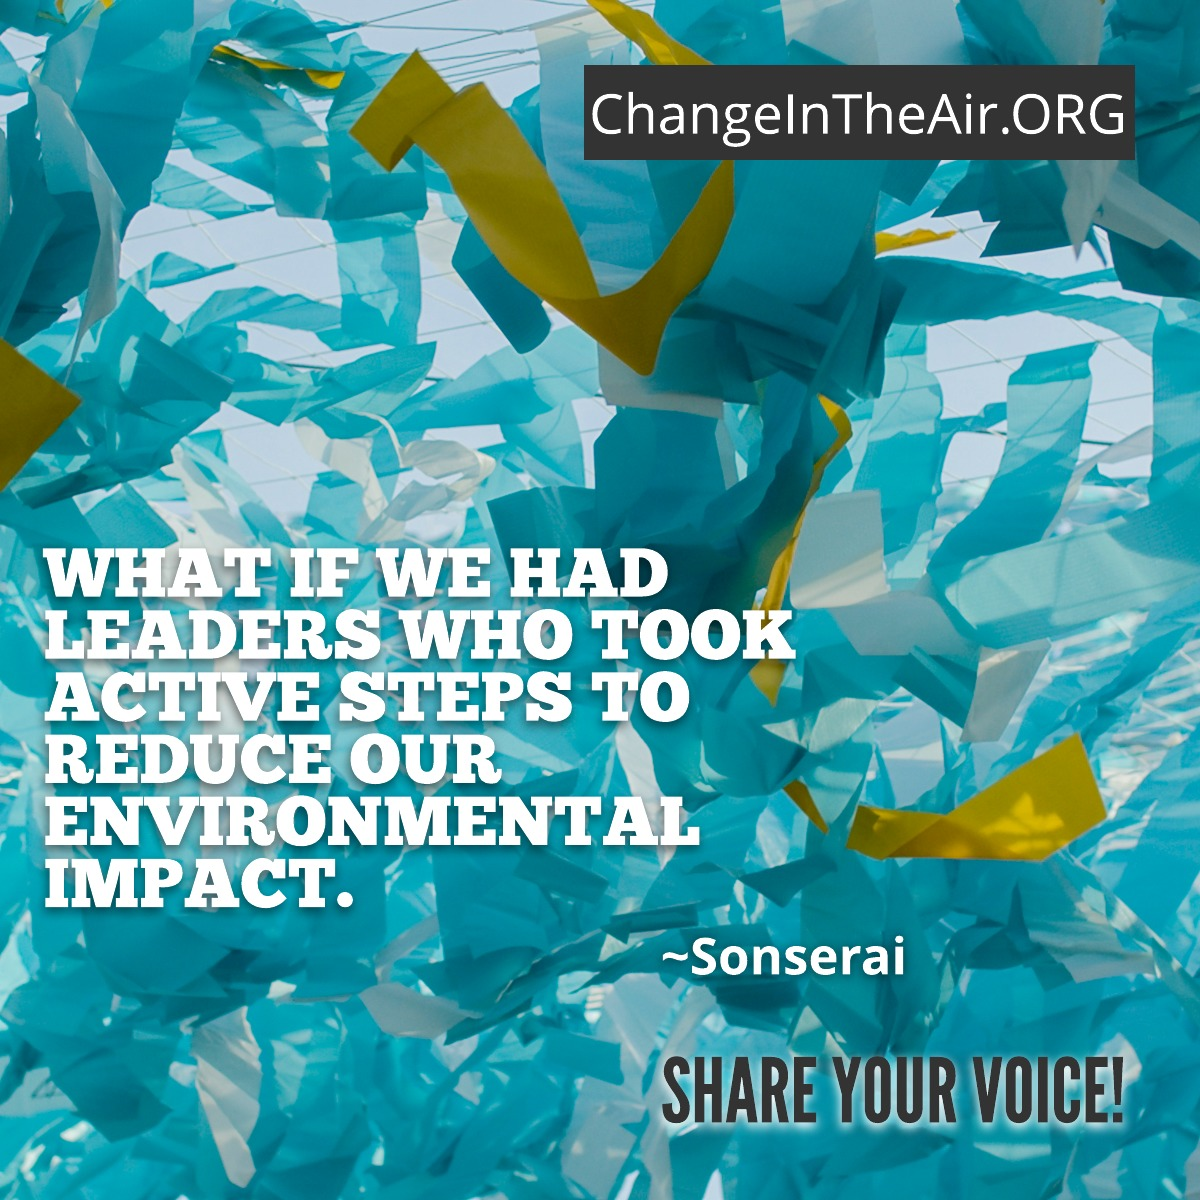 Change in the Air message. What if we had leaders who took active steps to reduce our environmental impact?